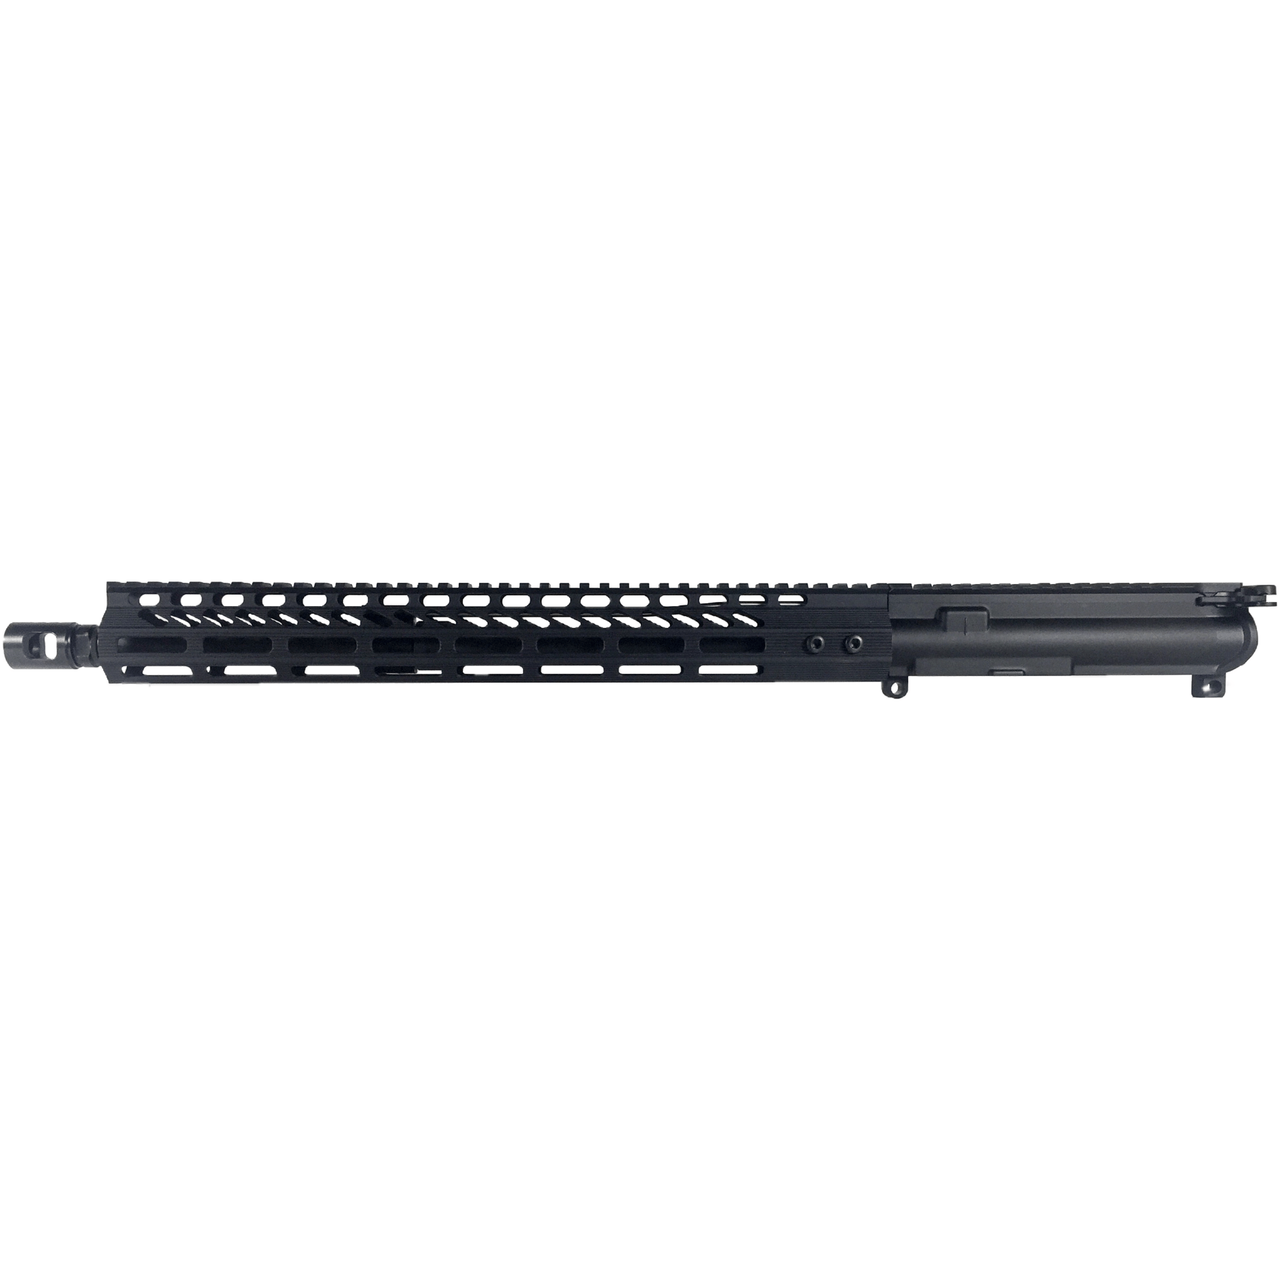 "MDX Arms 16"" 5.56 1:7T 4150CMV M-Lok HG Mid-Length Gas Micro Single Comp Complete Upper"